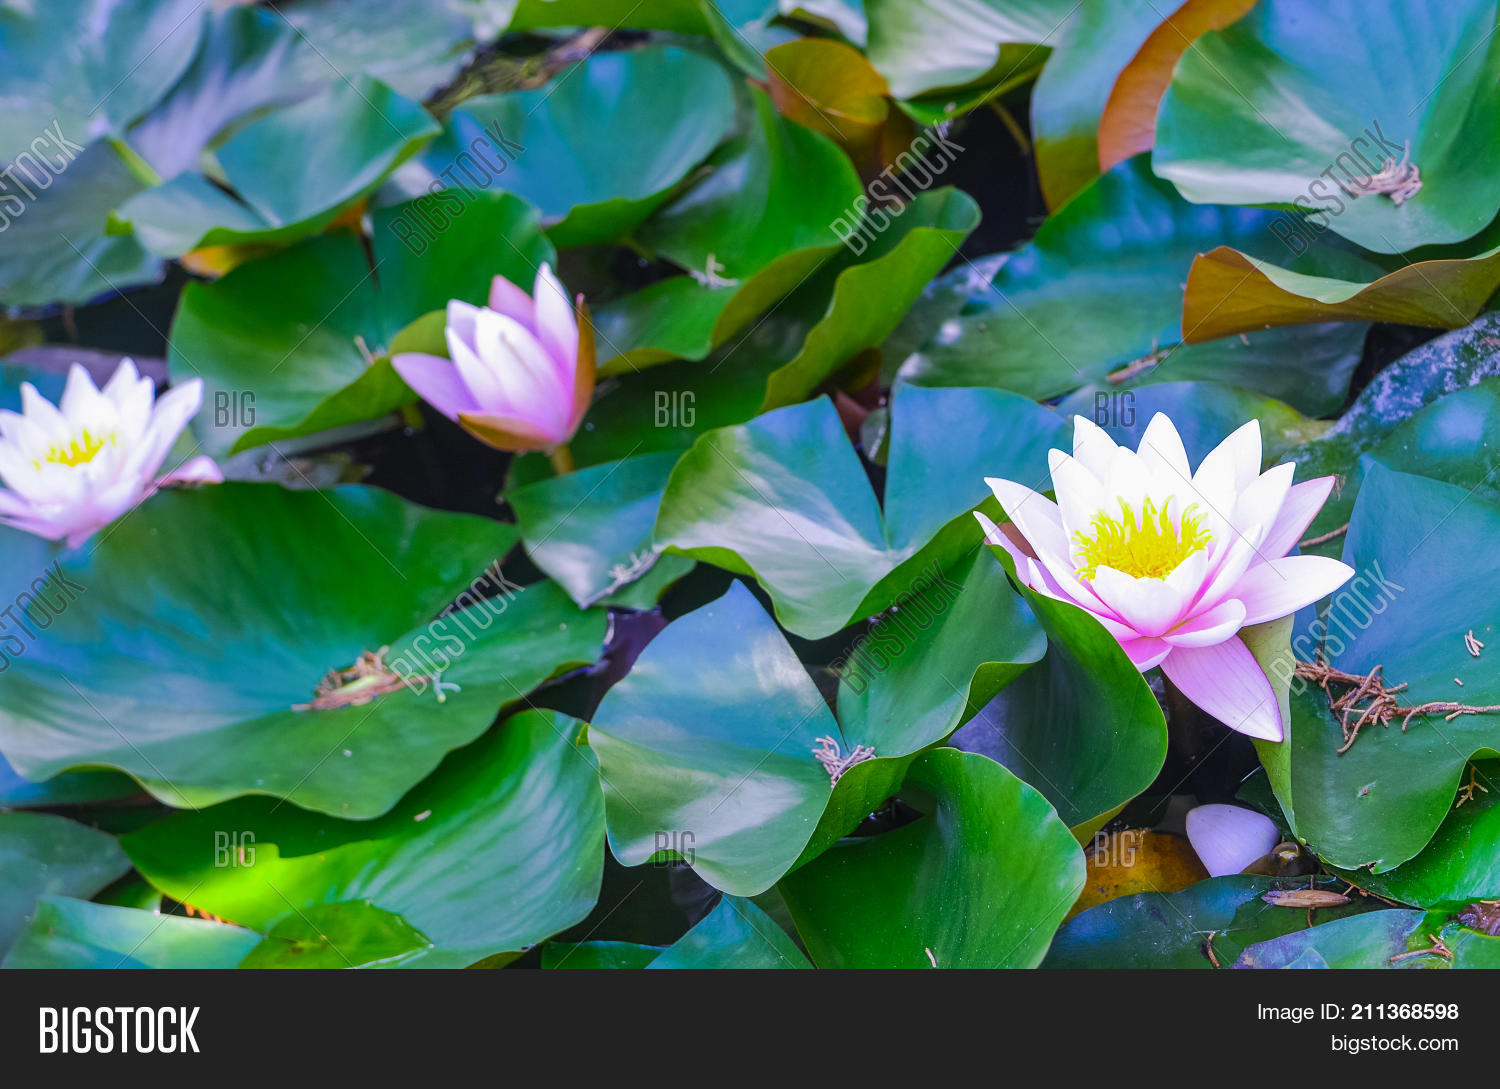 Tender pink water lilies detailed image photo bigstock tender pink water lilies detailed view close up beautiful lotus flowers in the pond izmirmasajfo